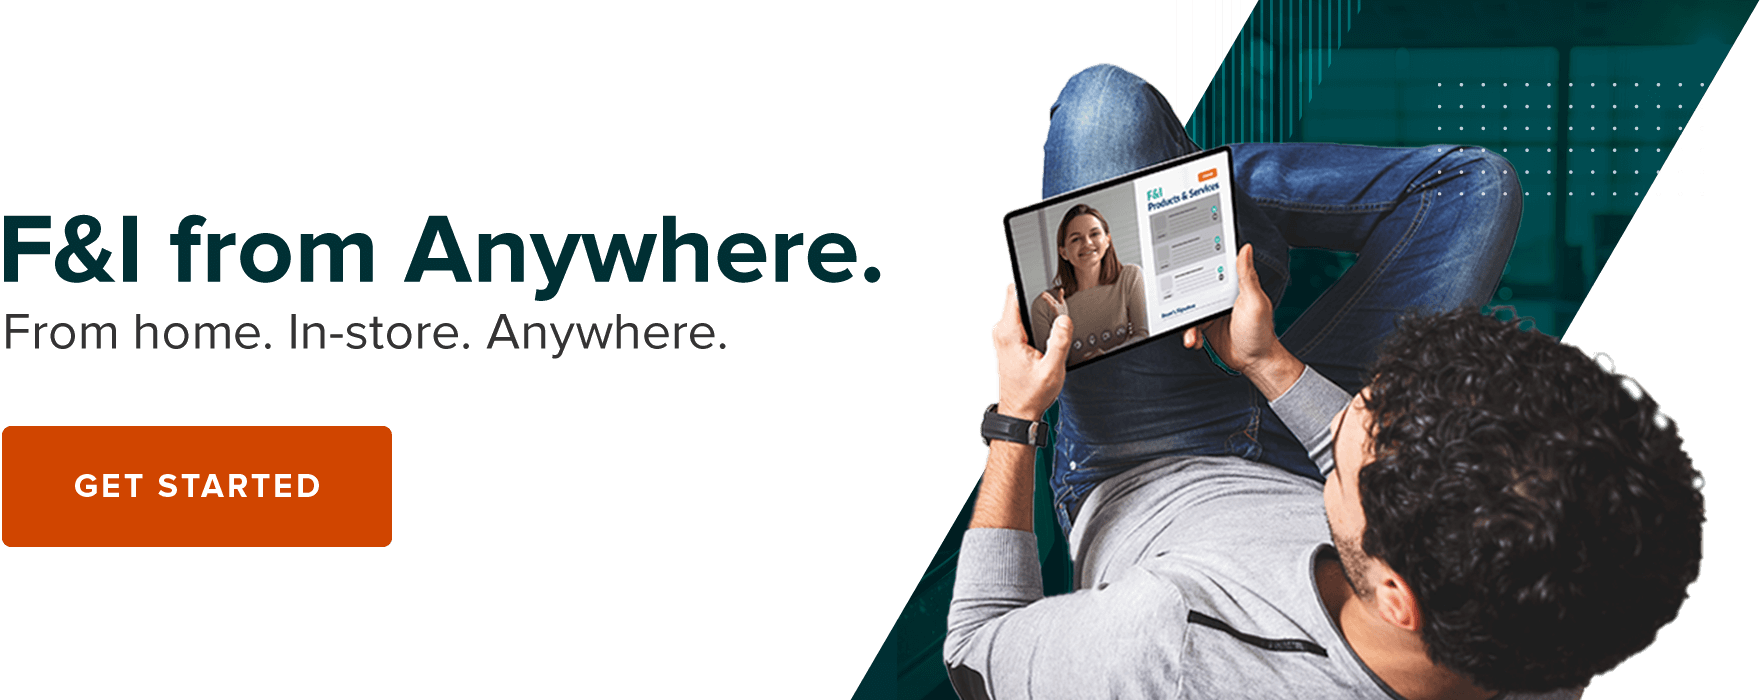 F&I from Anywhere. From Home. In-Store. Anywhere. Find Out More.